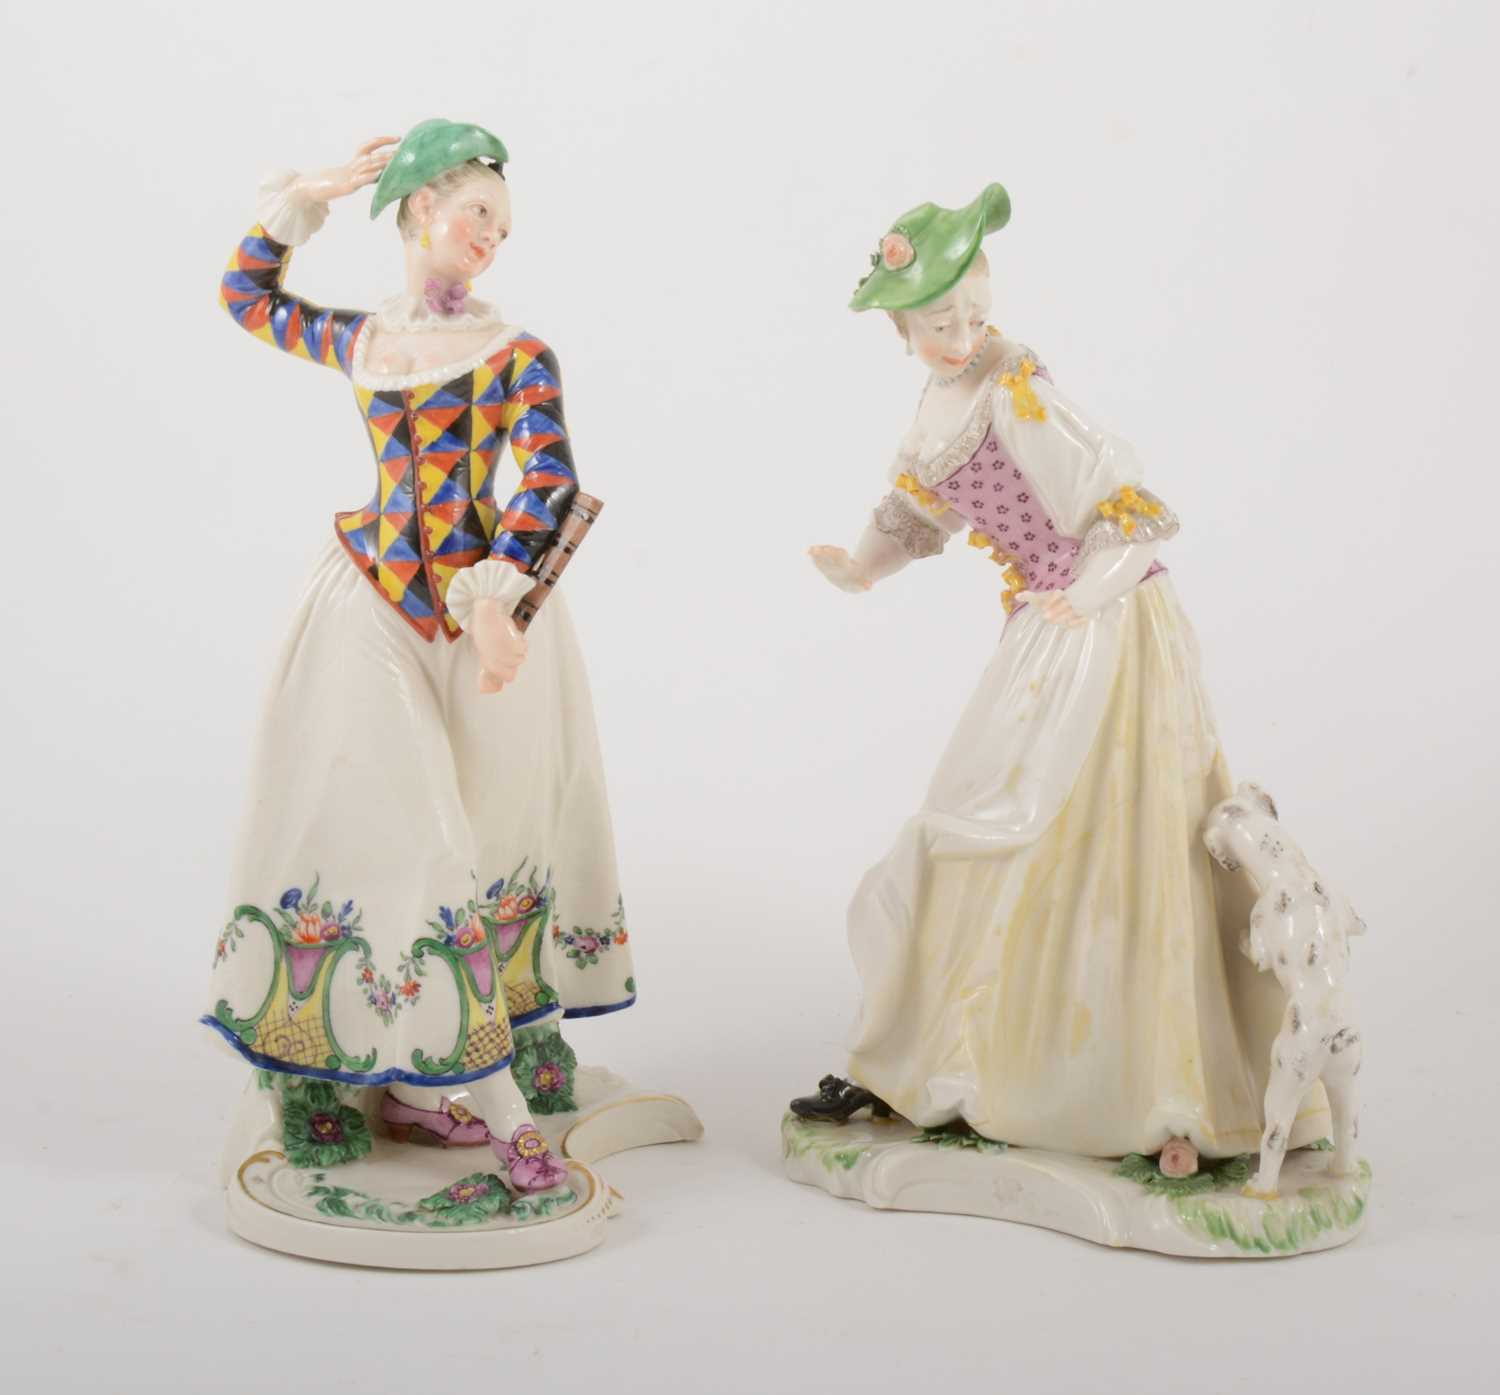 Lot 21-A Nymphenburg Commedia dell'Arte figure of Columbine, 20th century